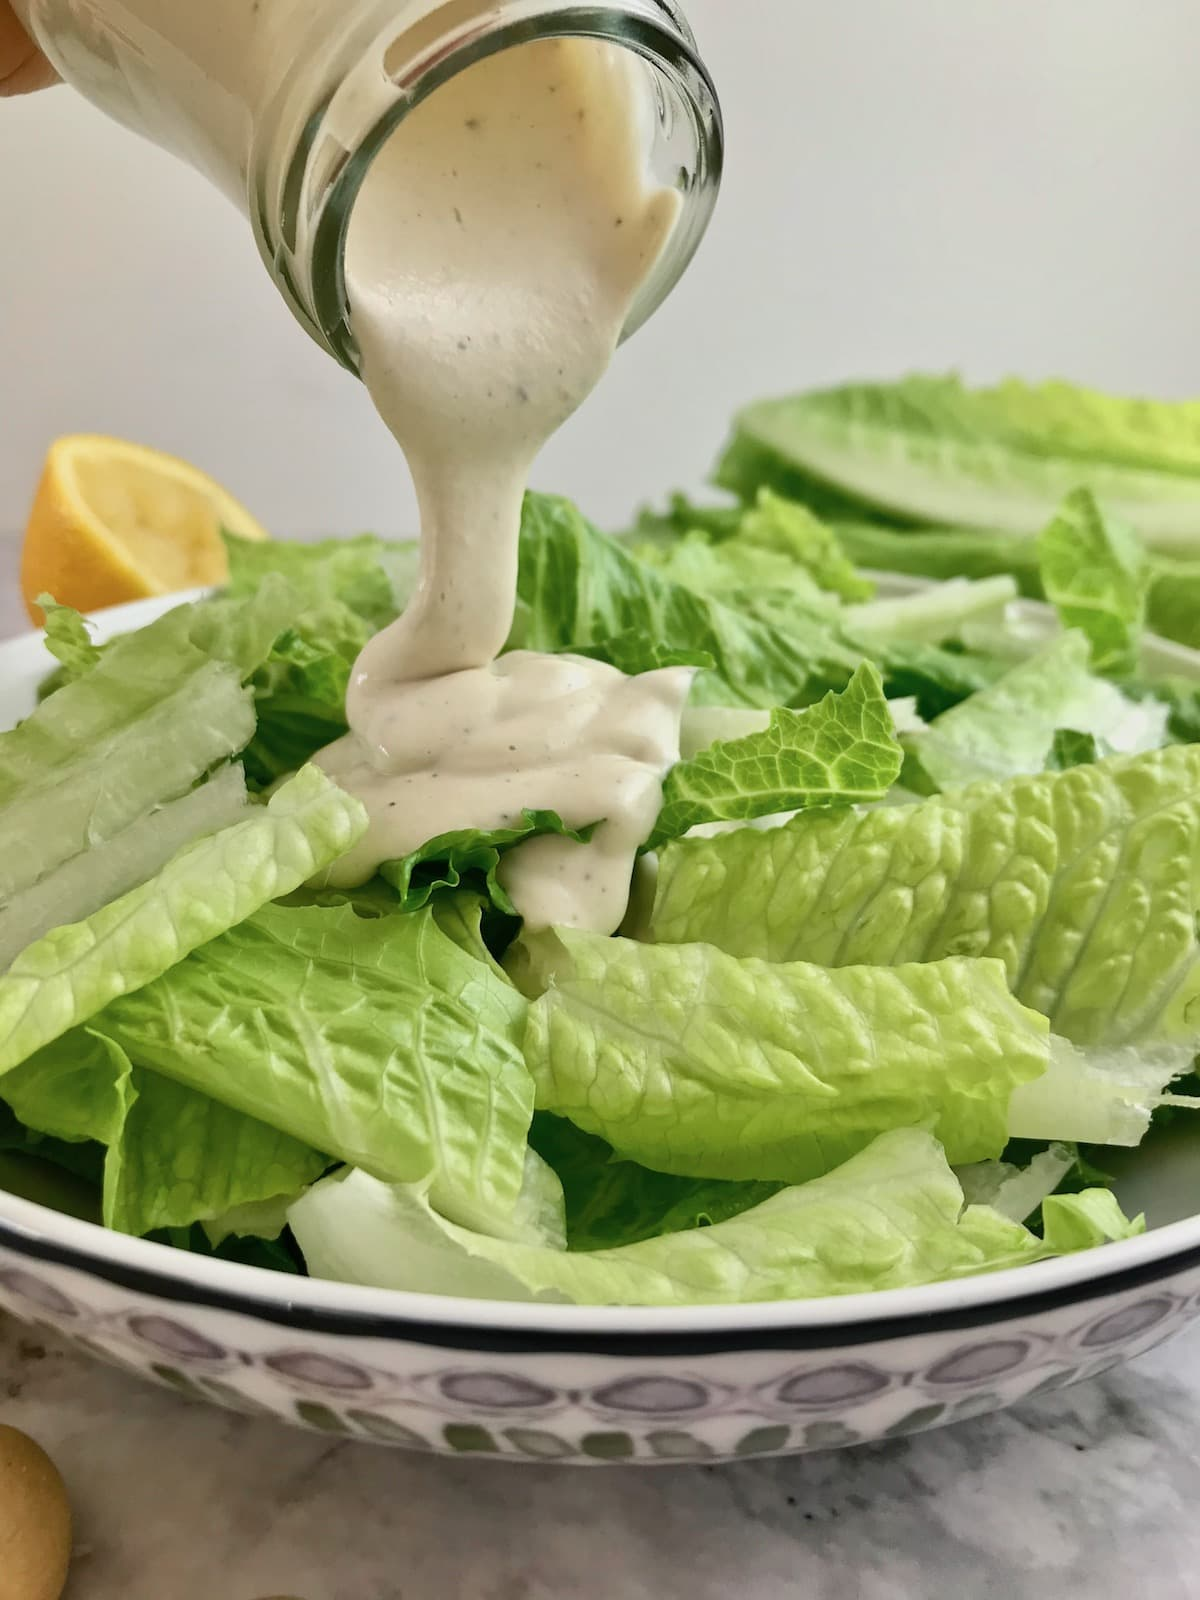 White Caesar dressing being poured onto a bowl or green romaine lettuce.